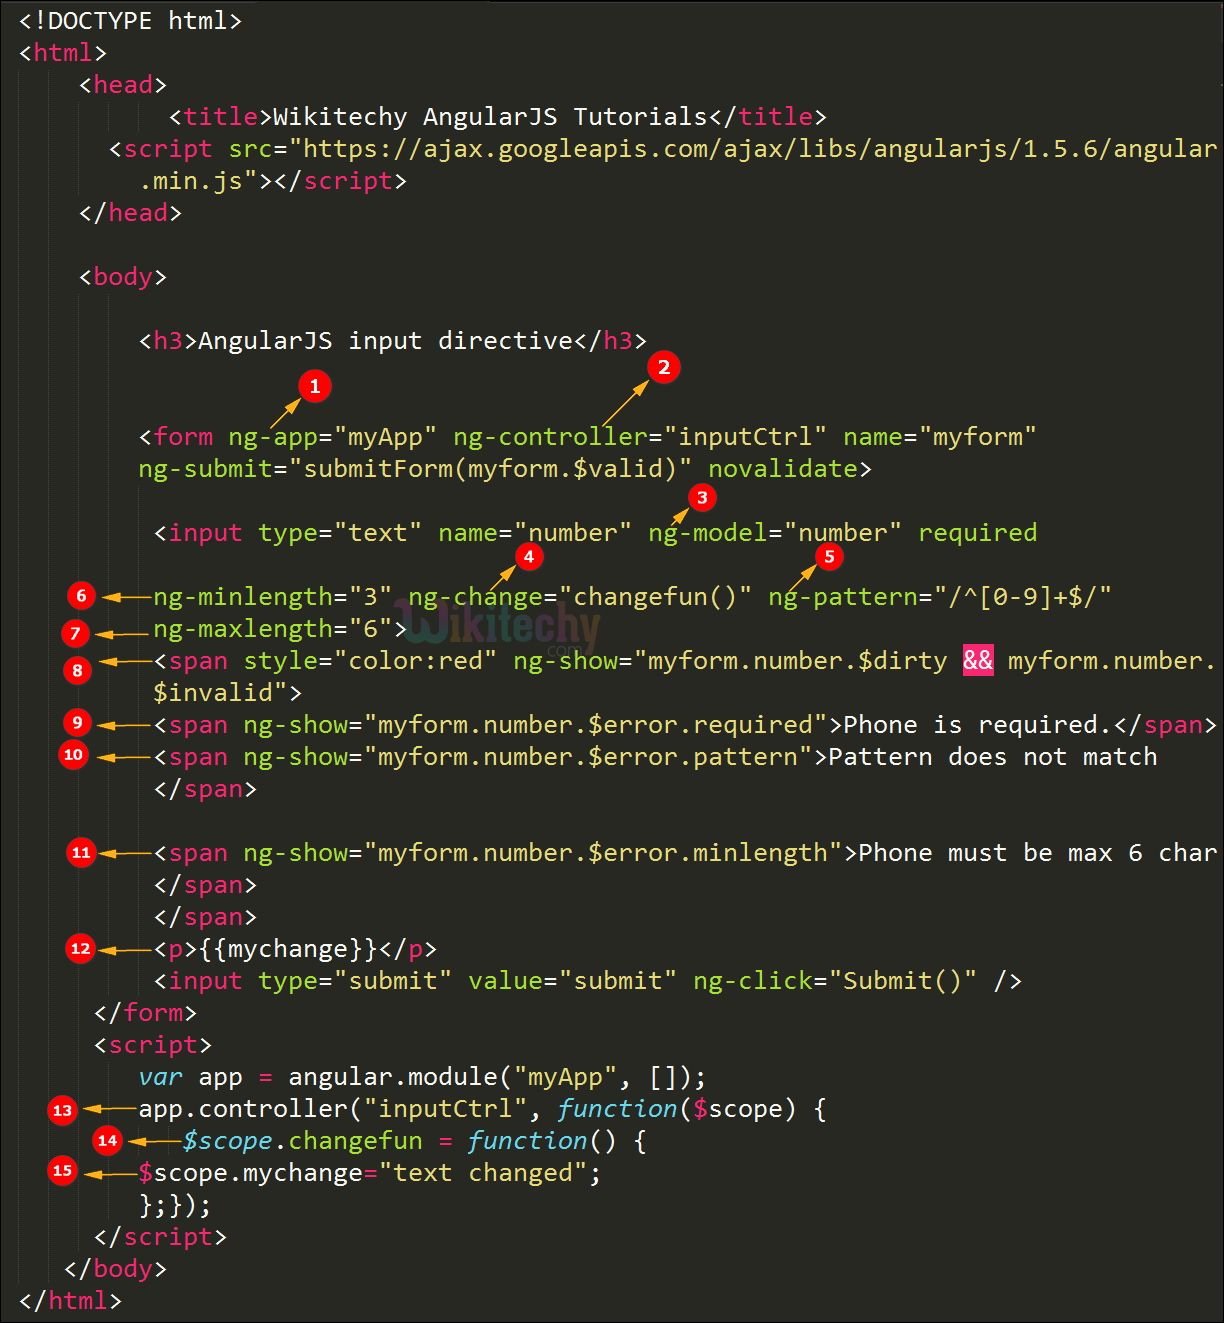 Code Explanation for AngularJS input Directive